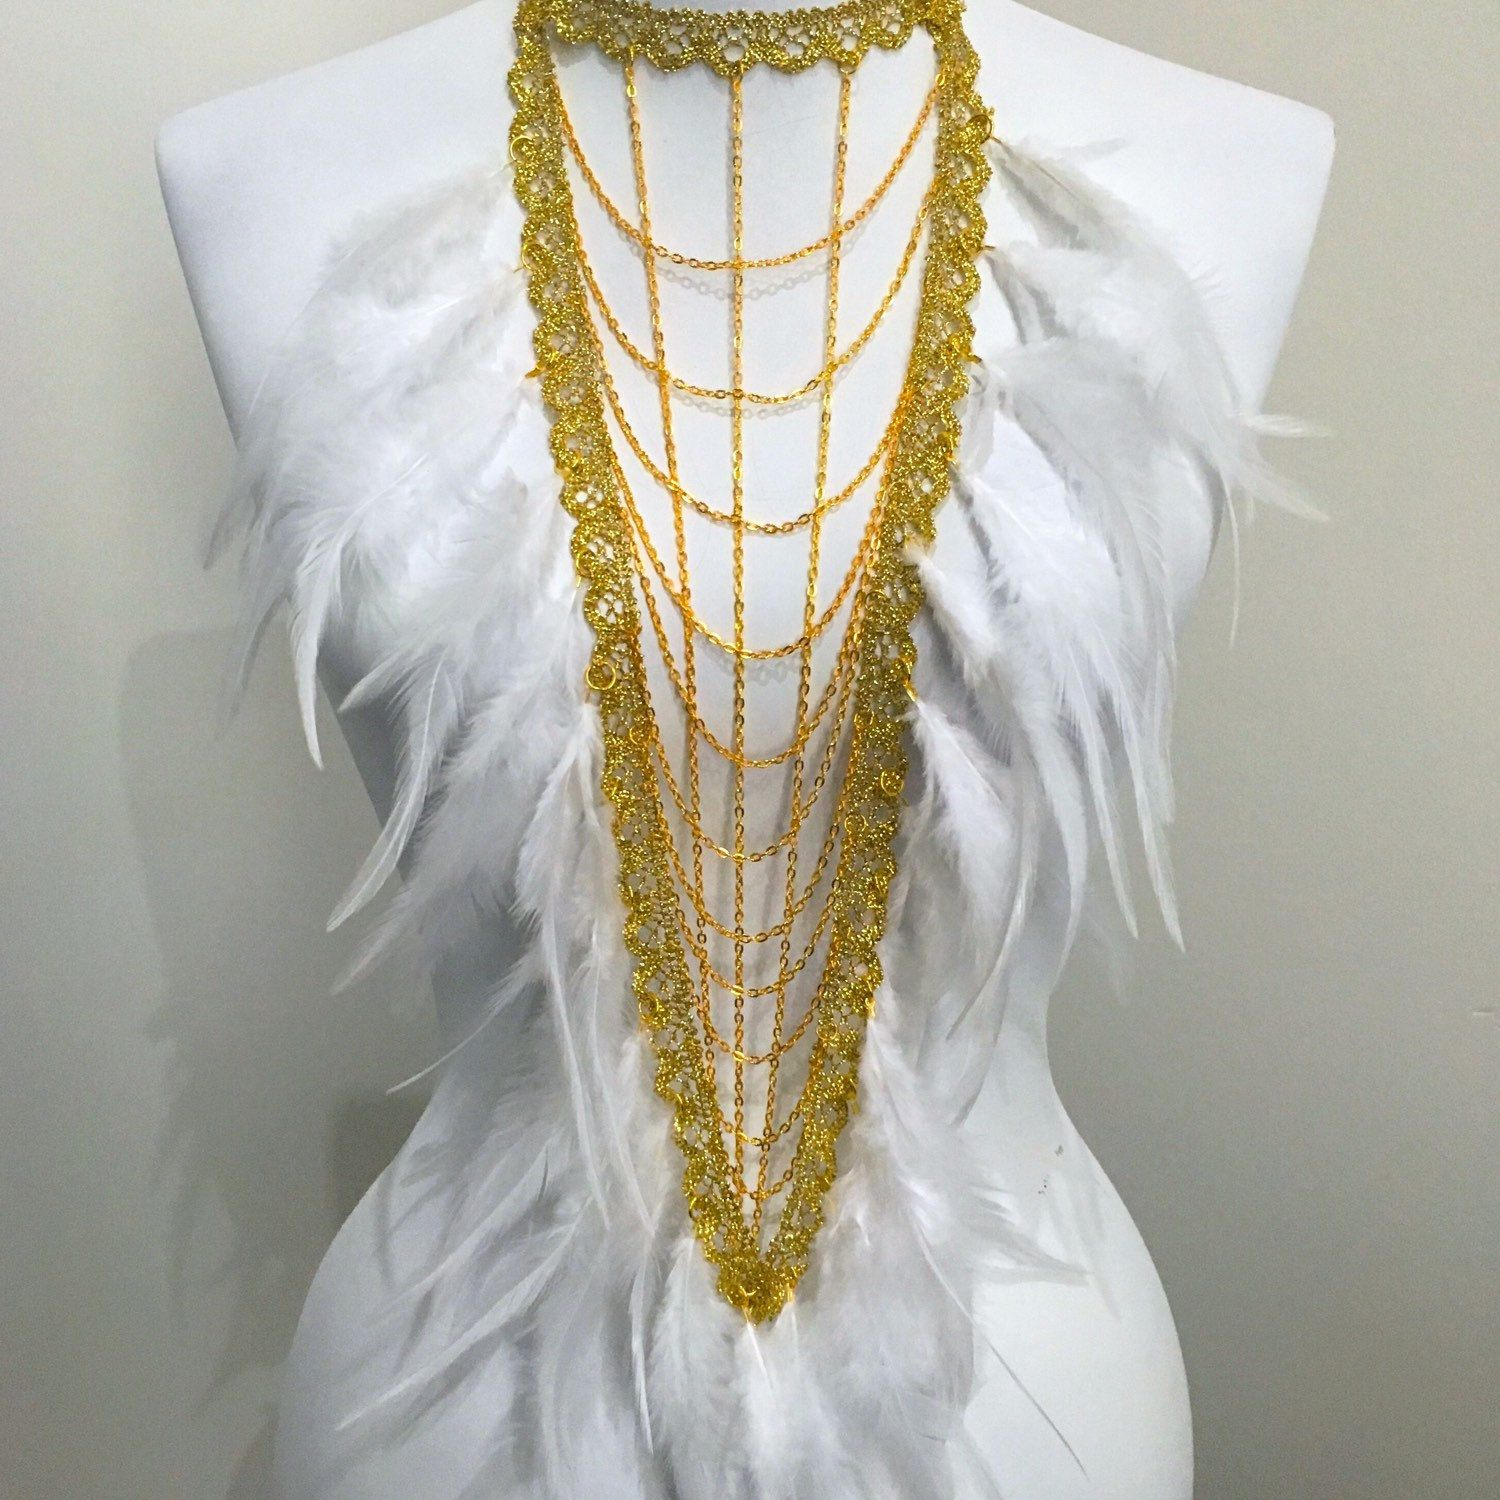 Breastplate bib statement necklace with lace chains u soft feathers